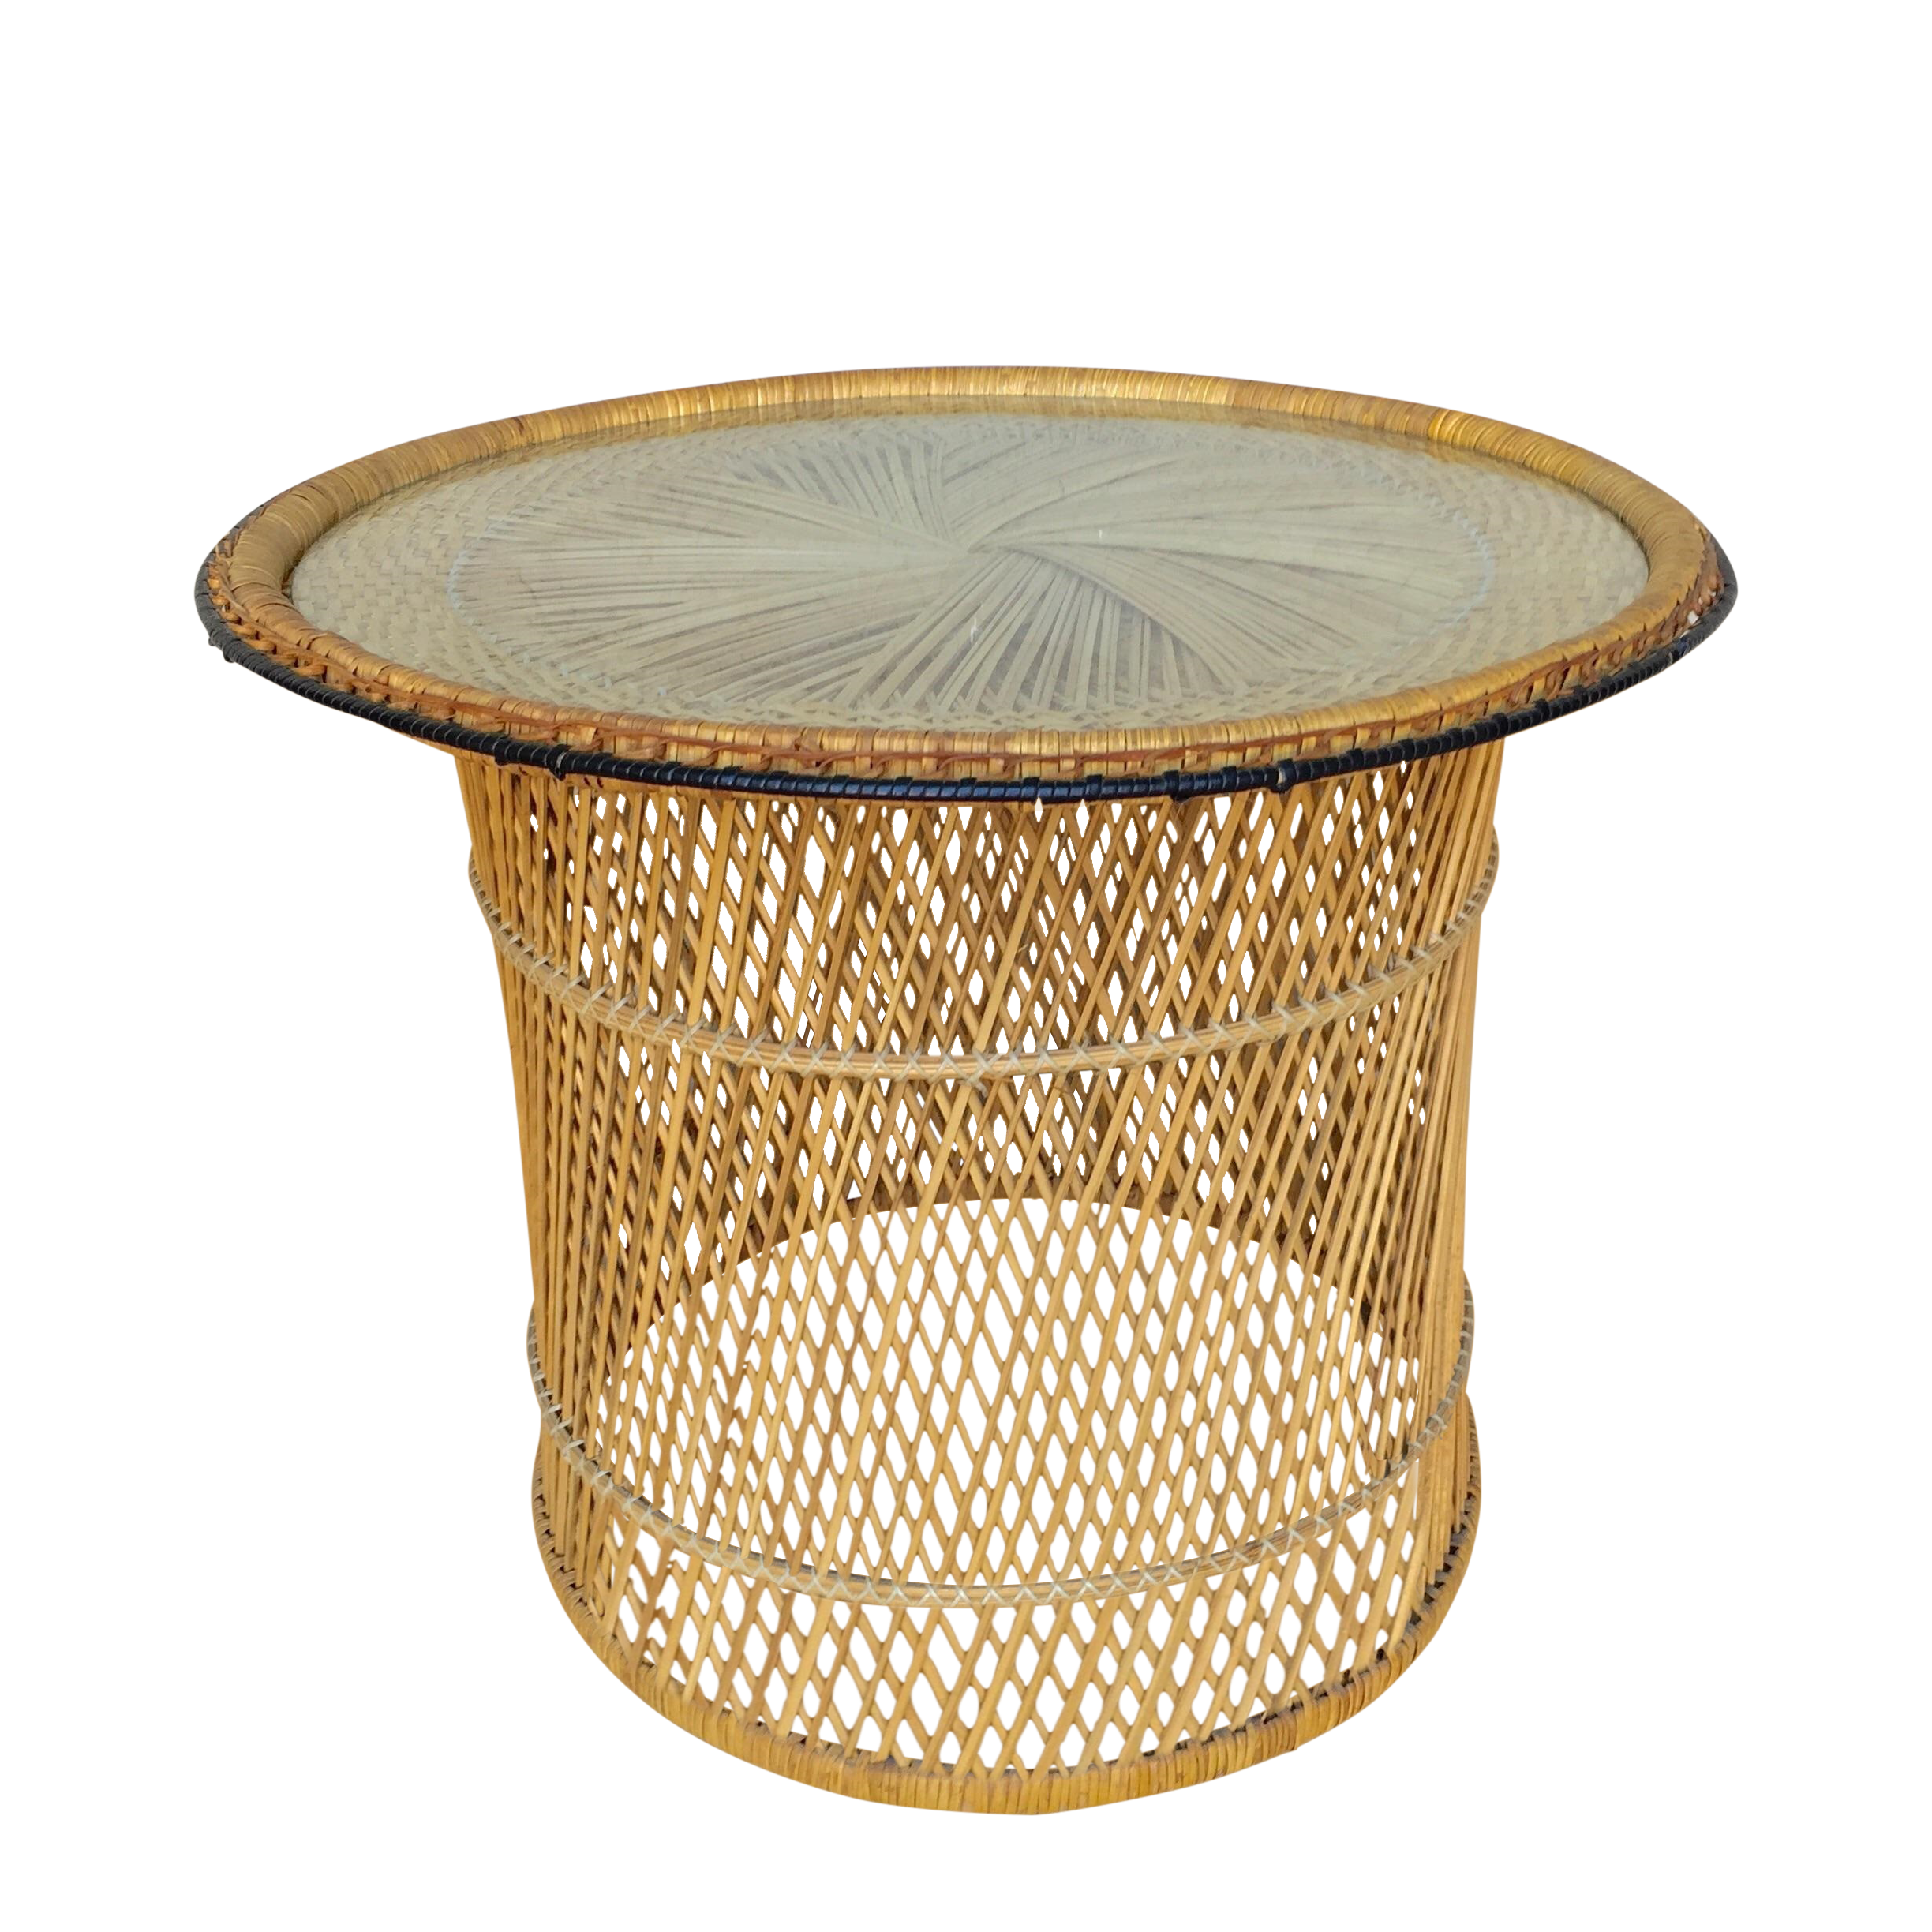 MCM Rattan Wicker Woven Glass Round Side Table